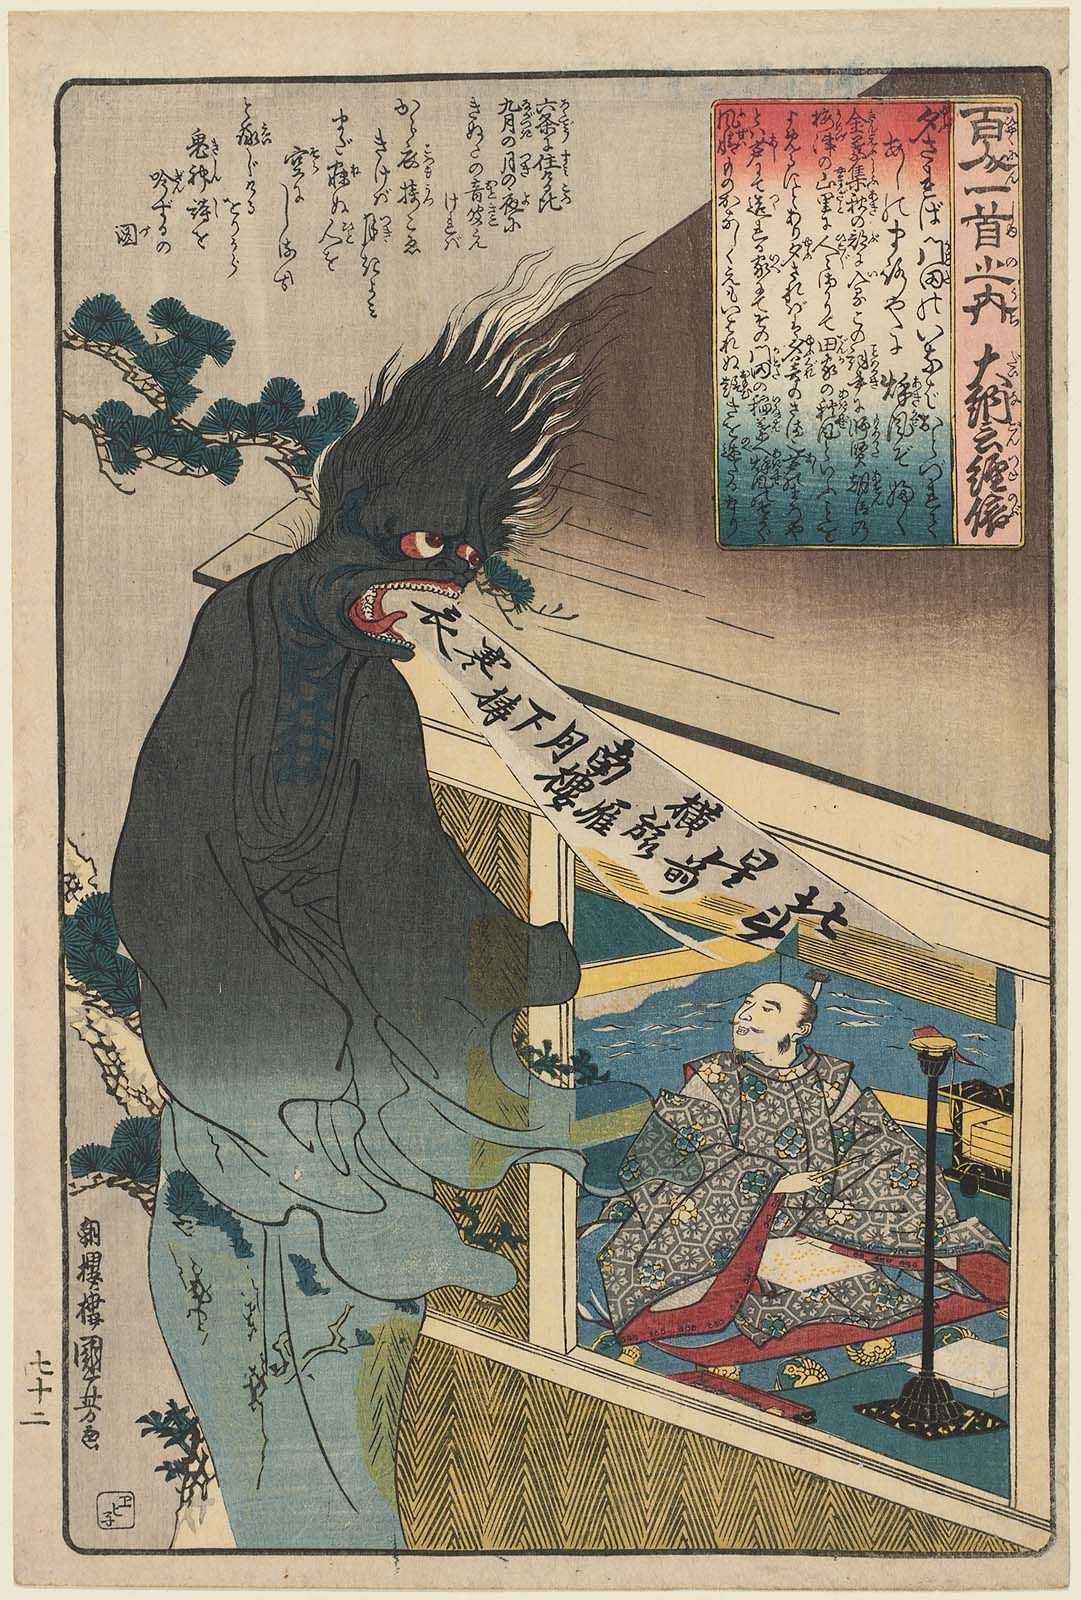 Poem By Dainagon Tsunenobu From The Series Of One Hundred Poems By One Hundred Poets Hyakunin Issu Japanese Art Japanese Woodblock Printing Japanese Painting